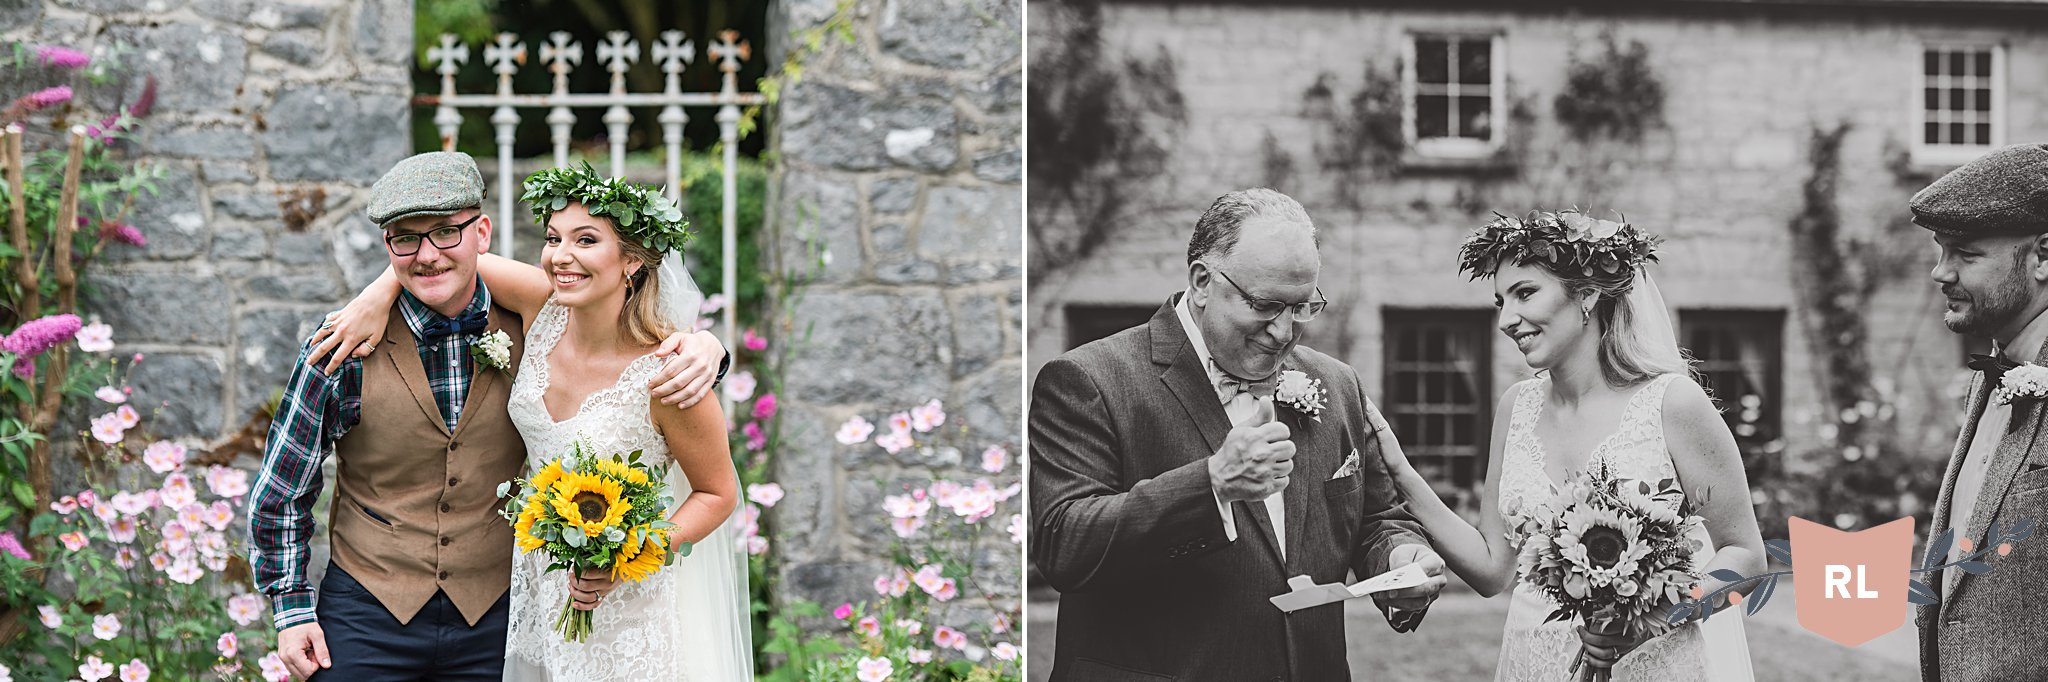 RossCastleWedding_Ireland_1011.jpg